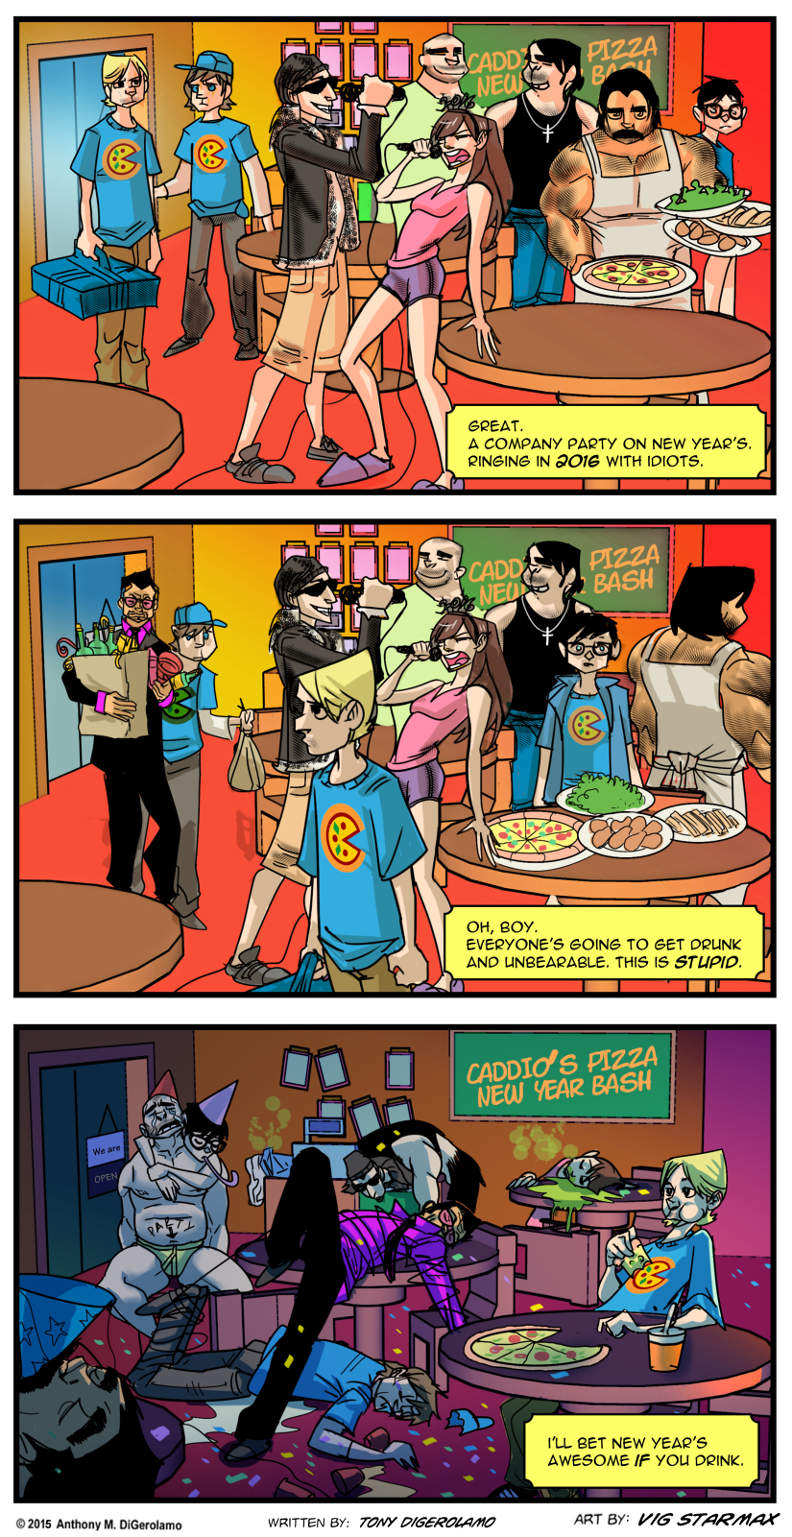 Tales of Pizza:  Watching New Year's